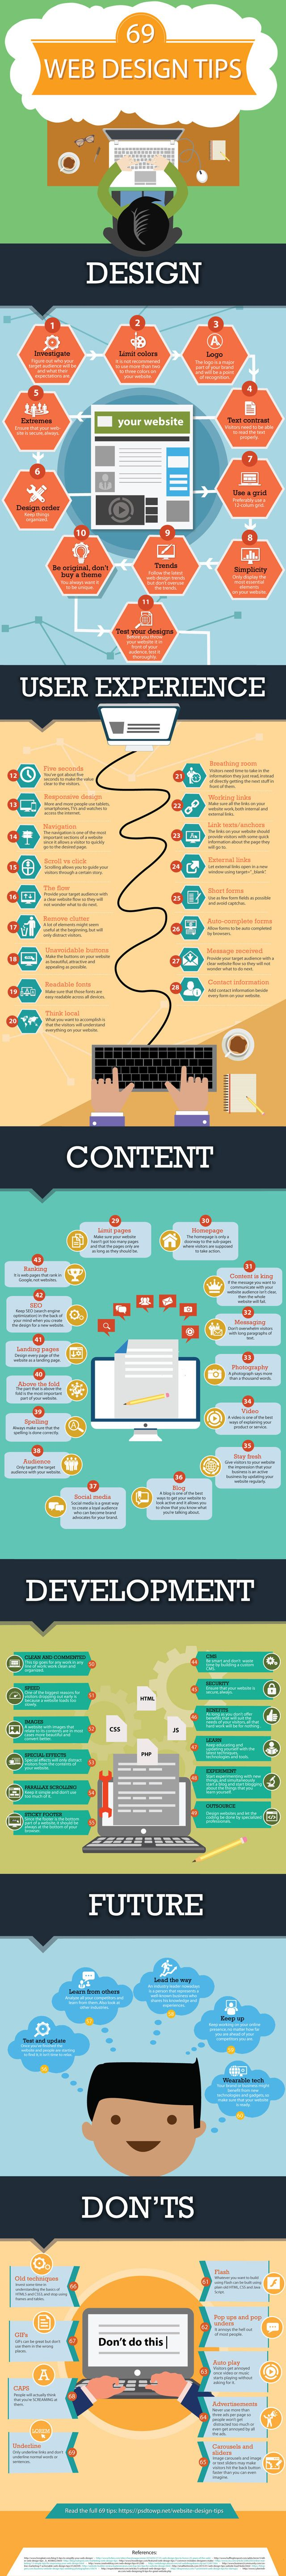 Want a More Effective Website Follow These 69 Tips for Success #Infographic